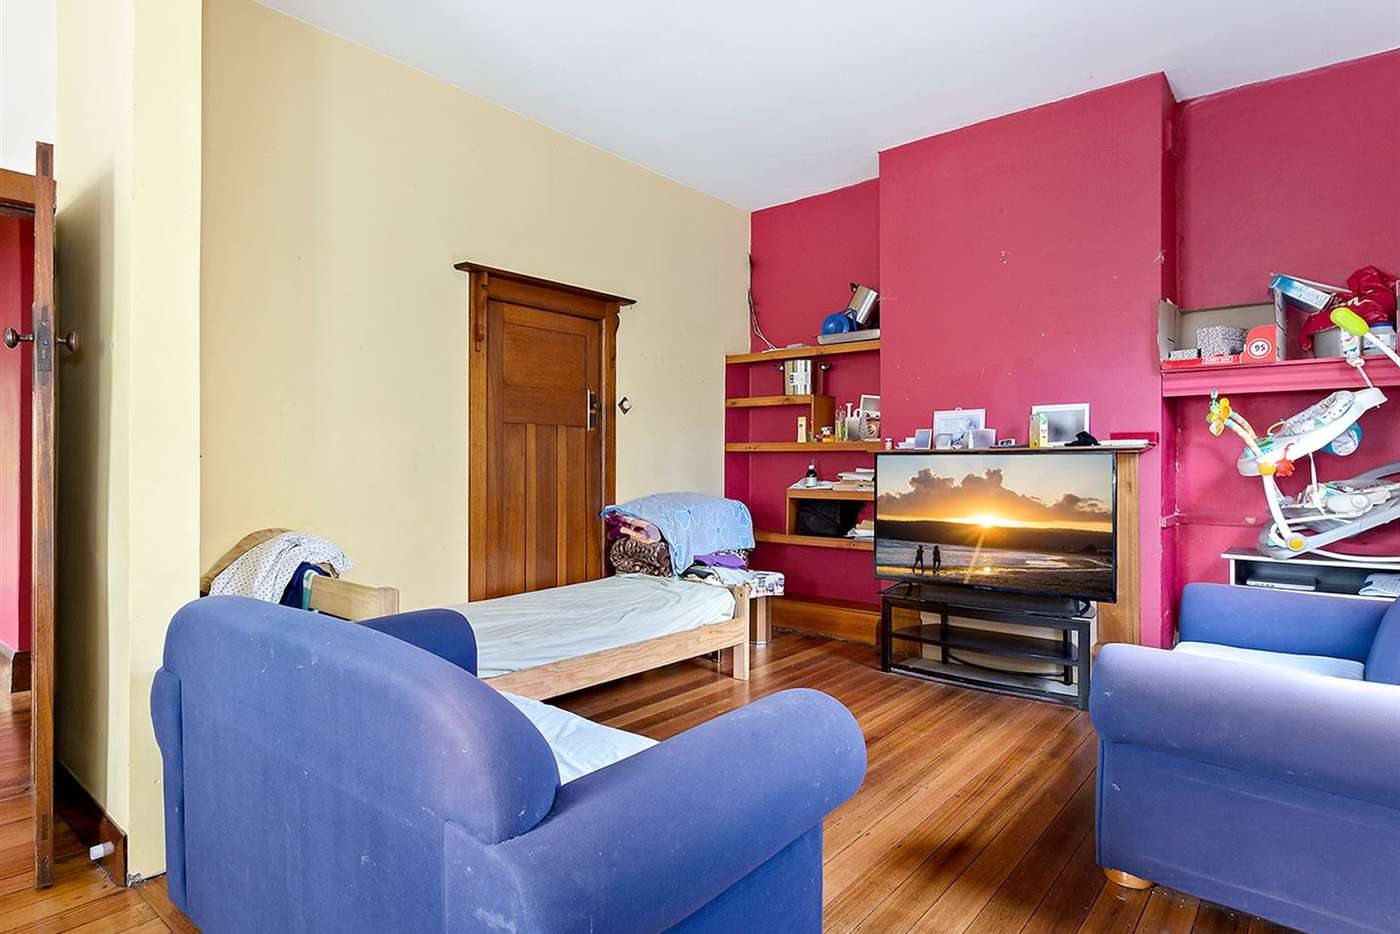 Seventh view of Homely house listing, 7 Jackson Street, Mowbray TAS 7248